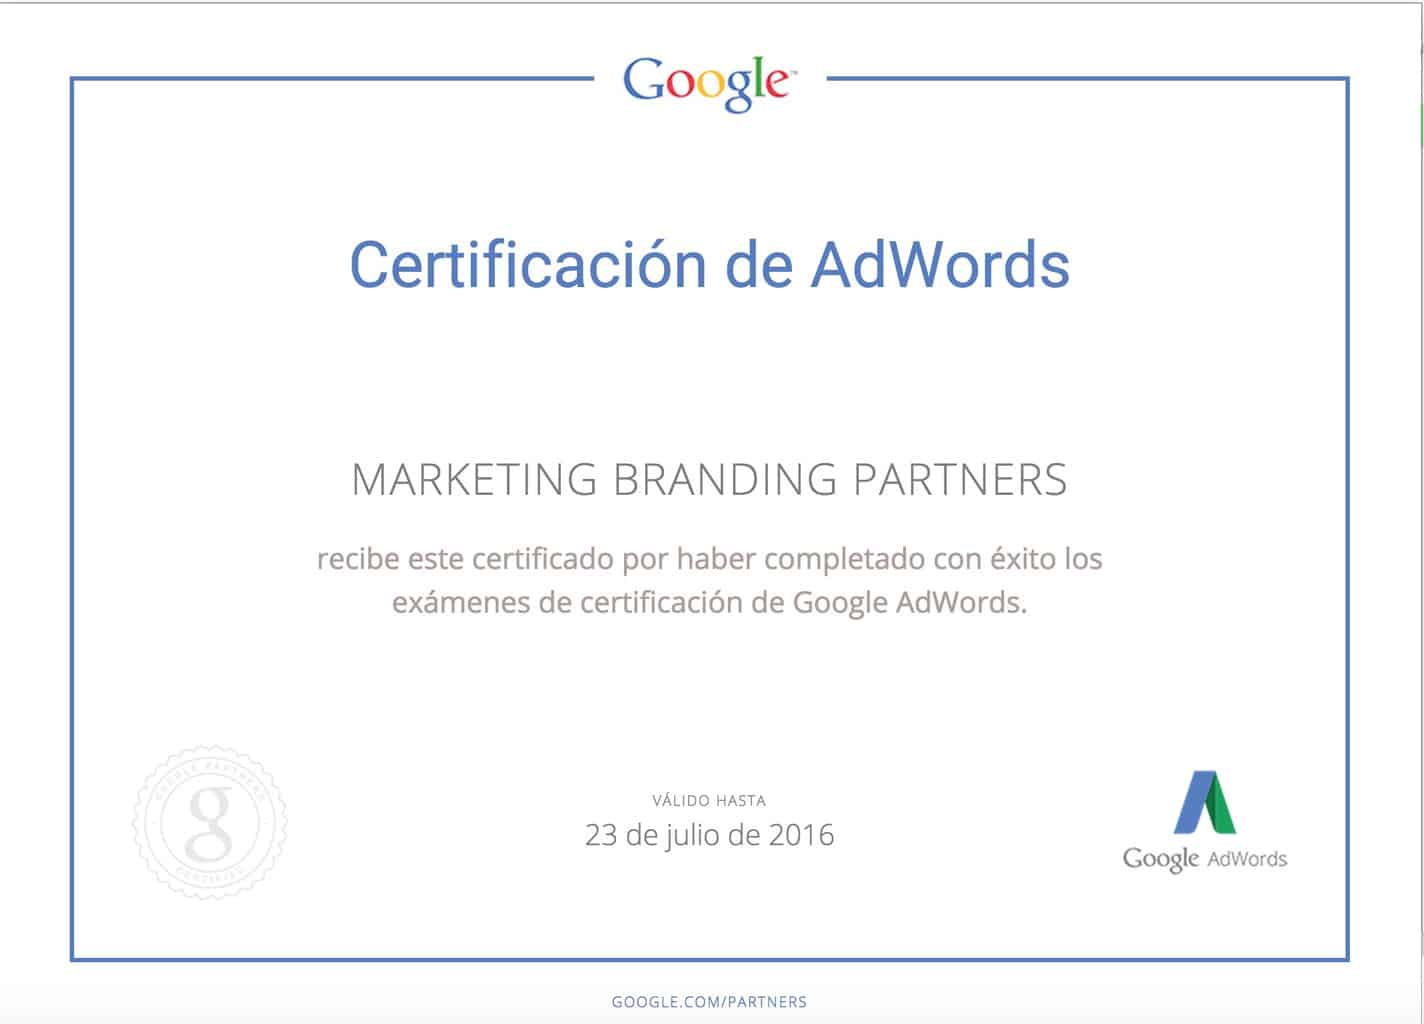 Certificacion de Adwords, Marketing Branding, servicios google adwords